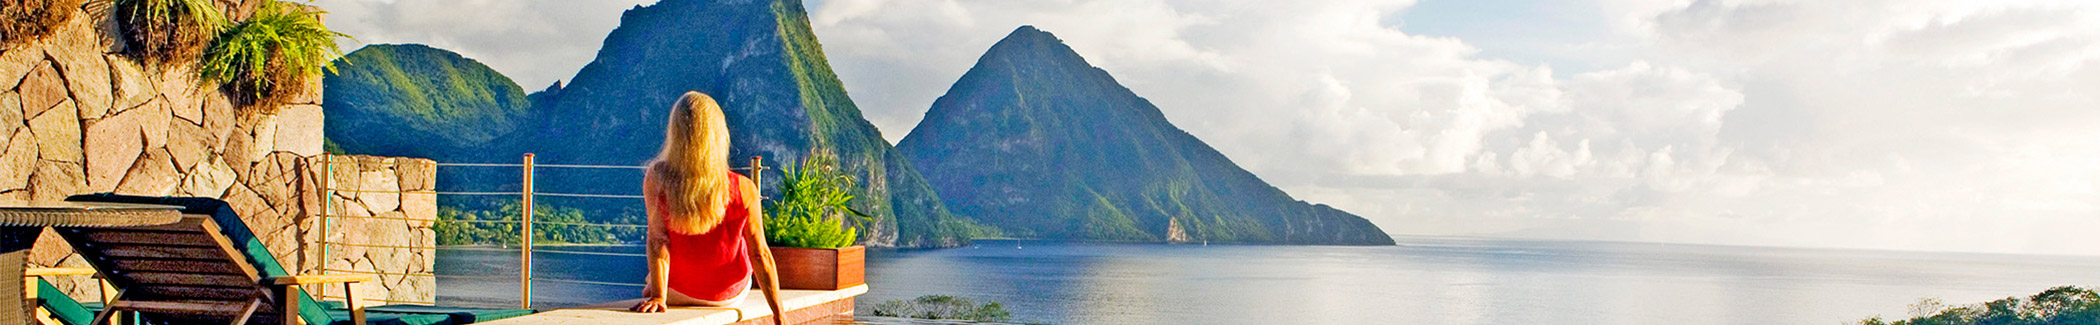 Discover Saint Lucia Banner